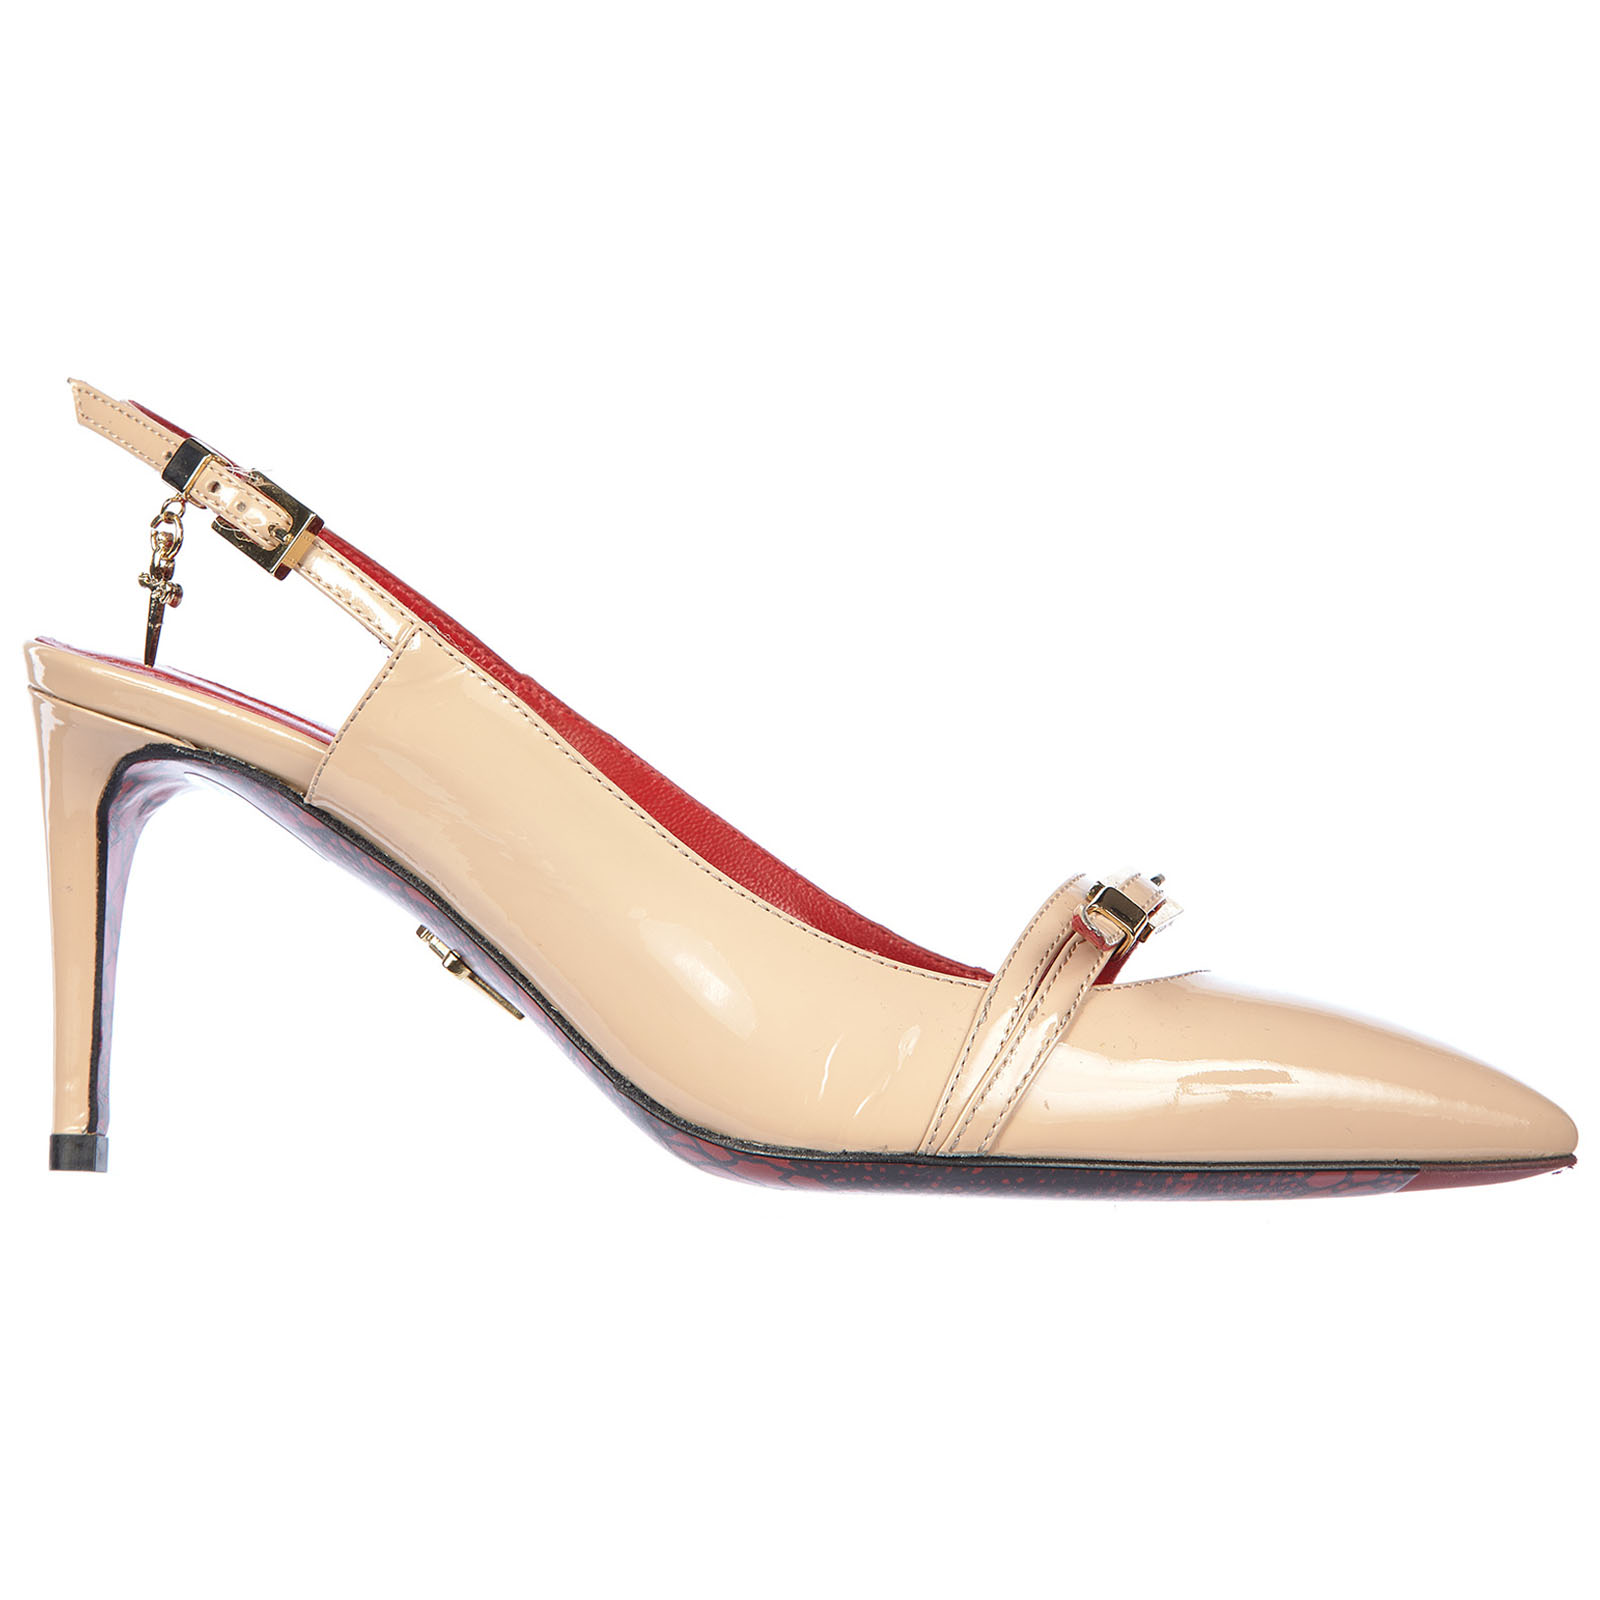 Women's leather pumps court shoes high heel vernice luce